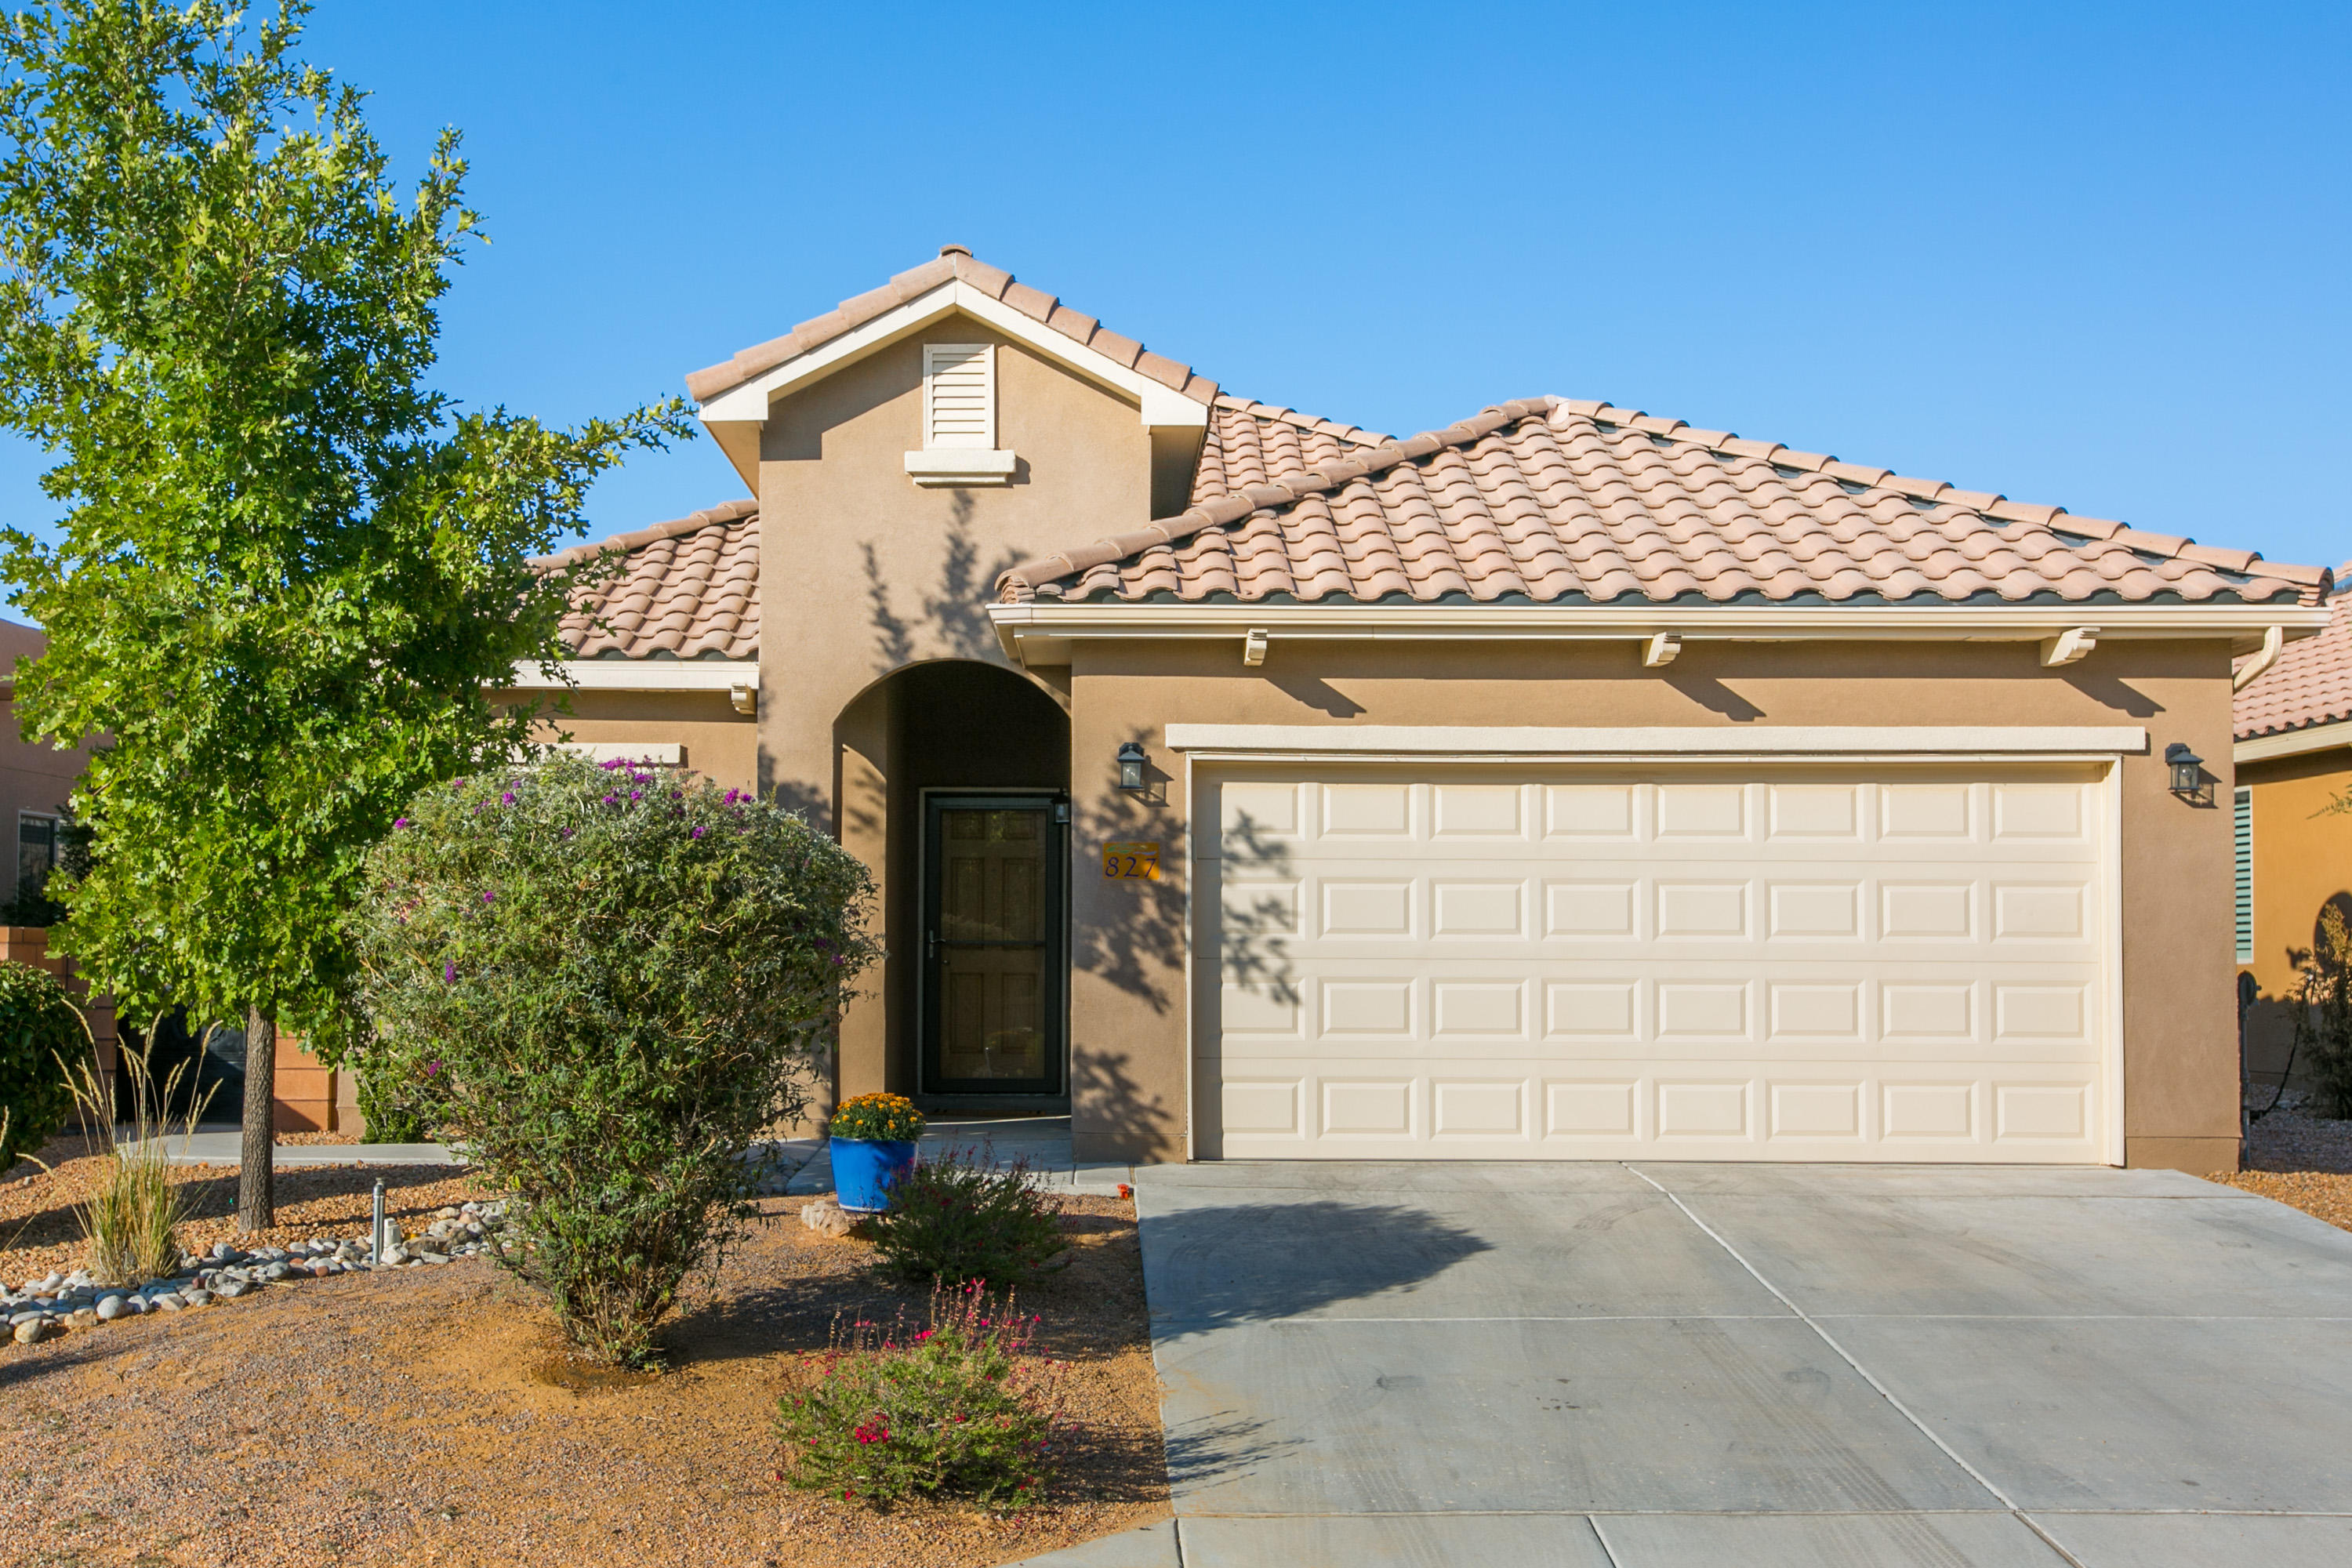 This beautiful Del Webb home is located in the Alegria 55+ community. Situated in a private, gated community, amenities include: salt-water pool, fitness center, event rooms, library and access to numerous walking/biking trails. Home features an open concept floor plan with bedrooms separate from each other for additional privacy. Upgrades include: skylights, gas cooktop, double oven, vent hood, upgraded tile, newer microwave and a new water heater (5/2020). The single-owner of this home has taken exceptional care of it- including adding nearly $15,000 worth of landscaping. You don't want to miss your opportunity to own an immaculate home in a desirable community. Call for your private showing today.